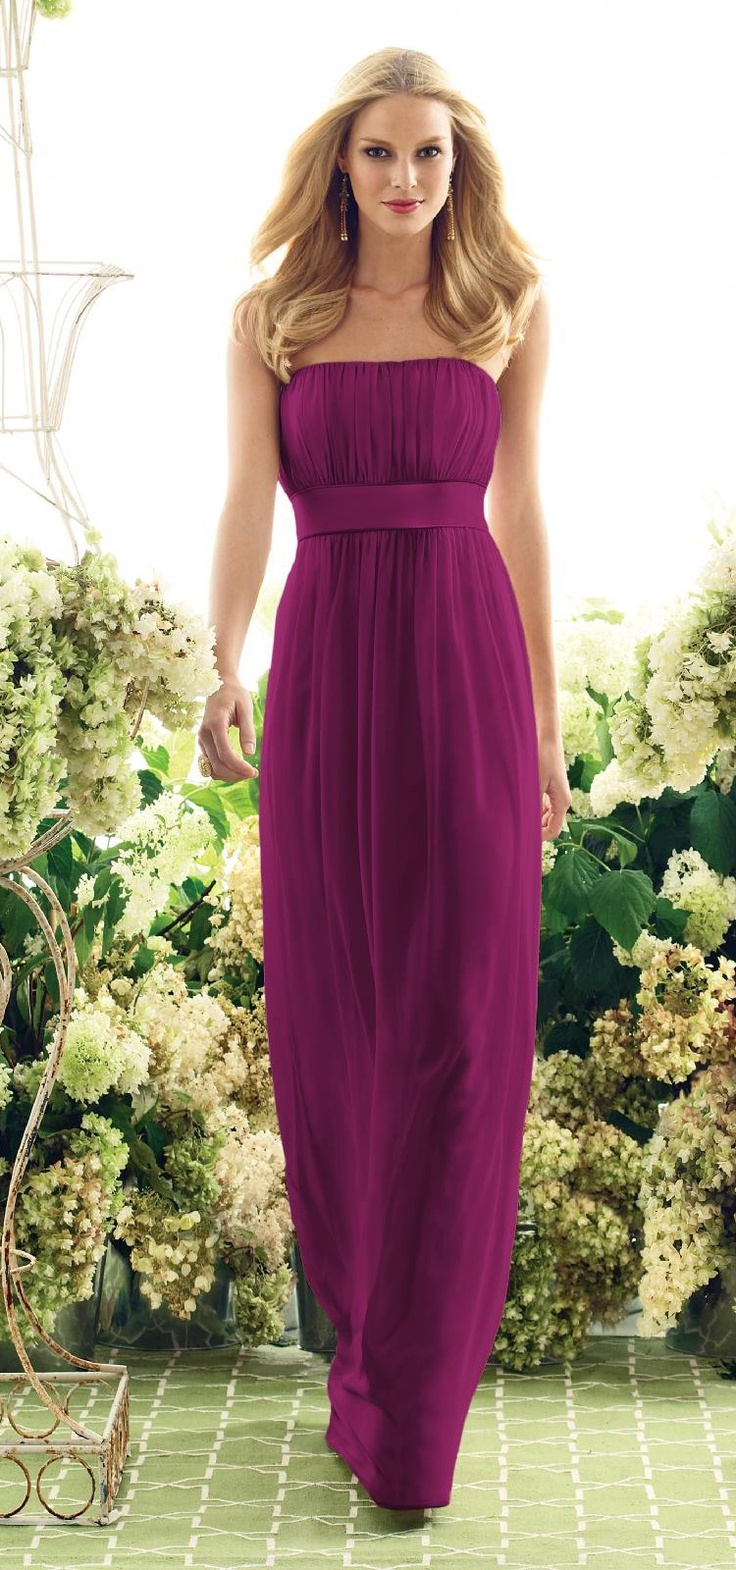 63 best Wedding!!!! images on Pinterest | Evening gowns, Formal prom ...